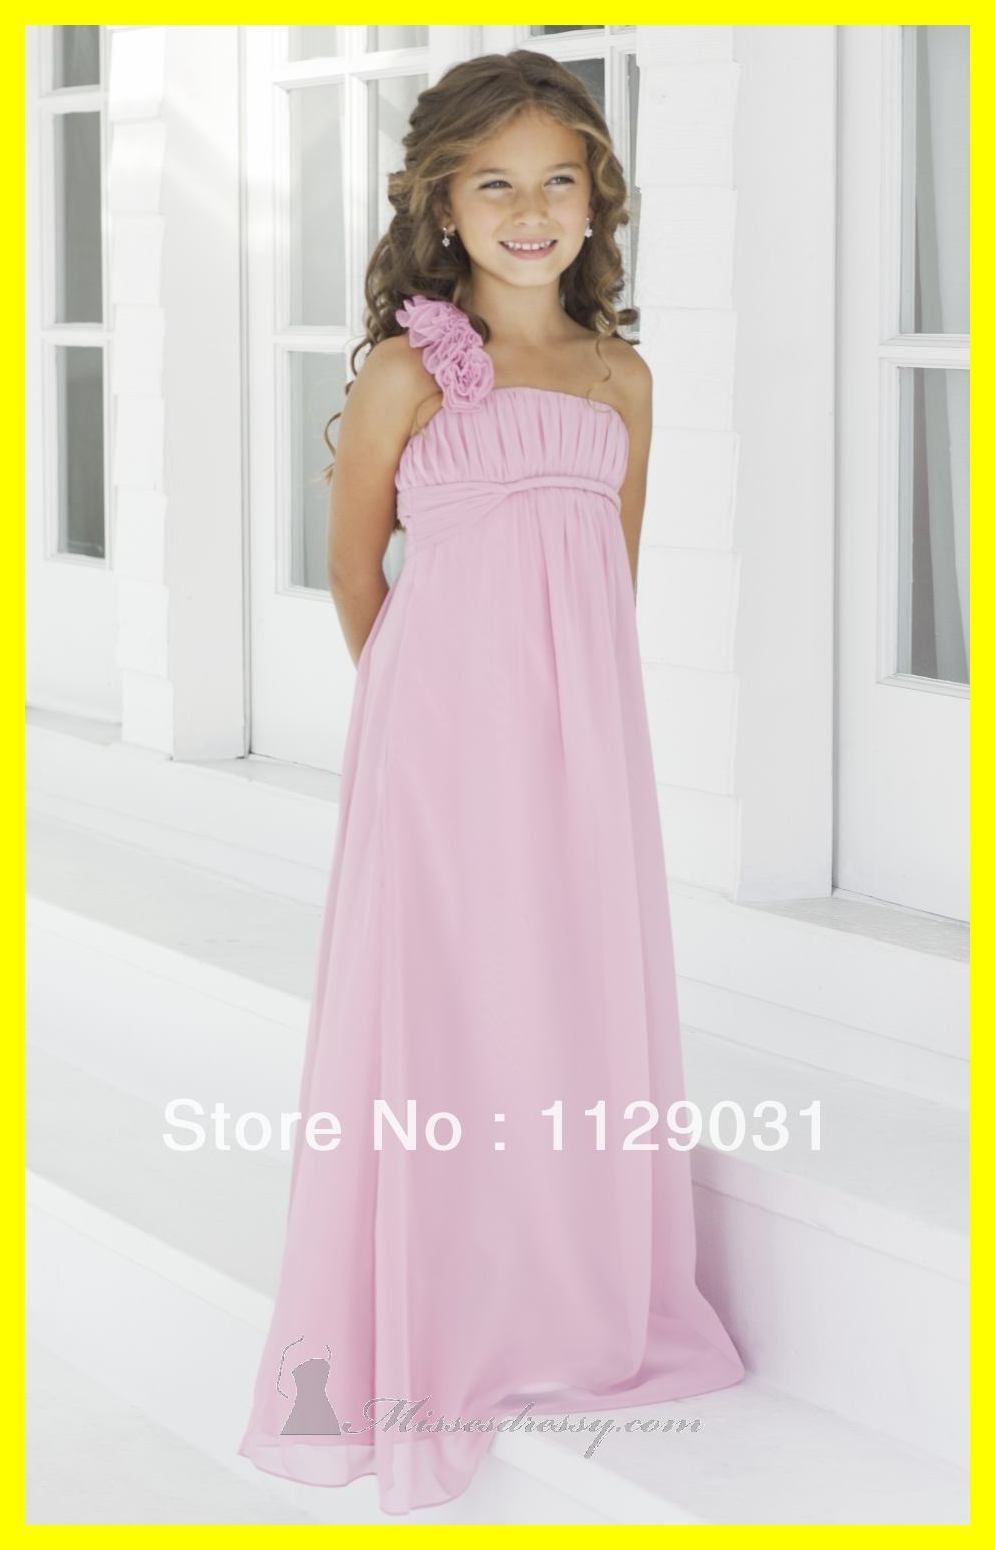 How to make flower girl dress lilac dresses uk kids white and how to make flower girl dress lilac dresses uk kids white and izmirmasajfo